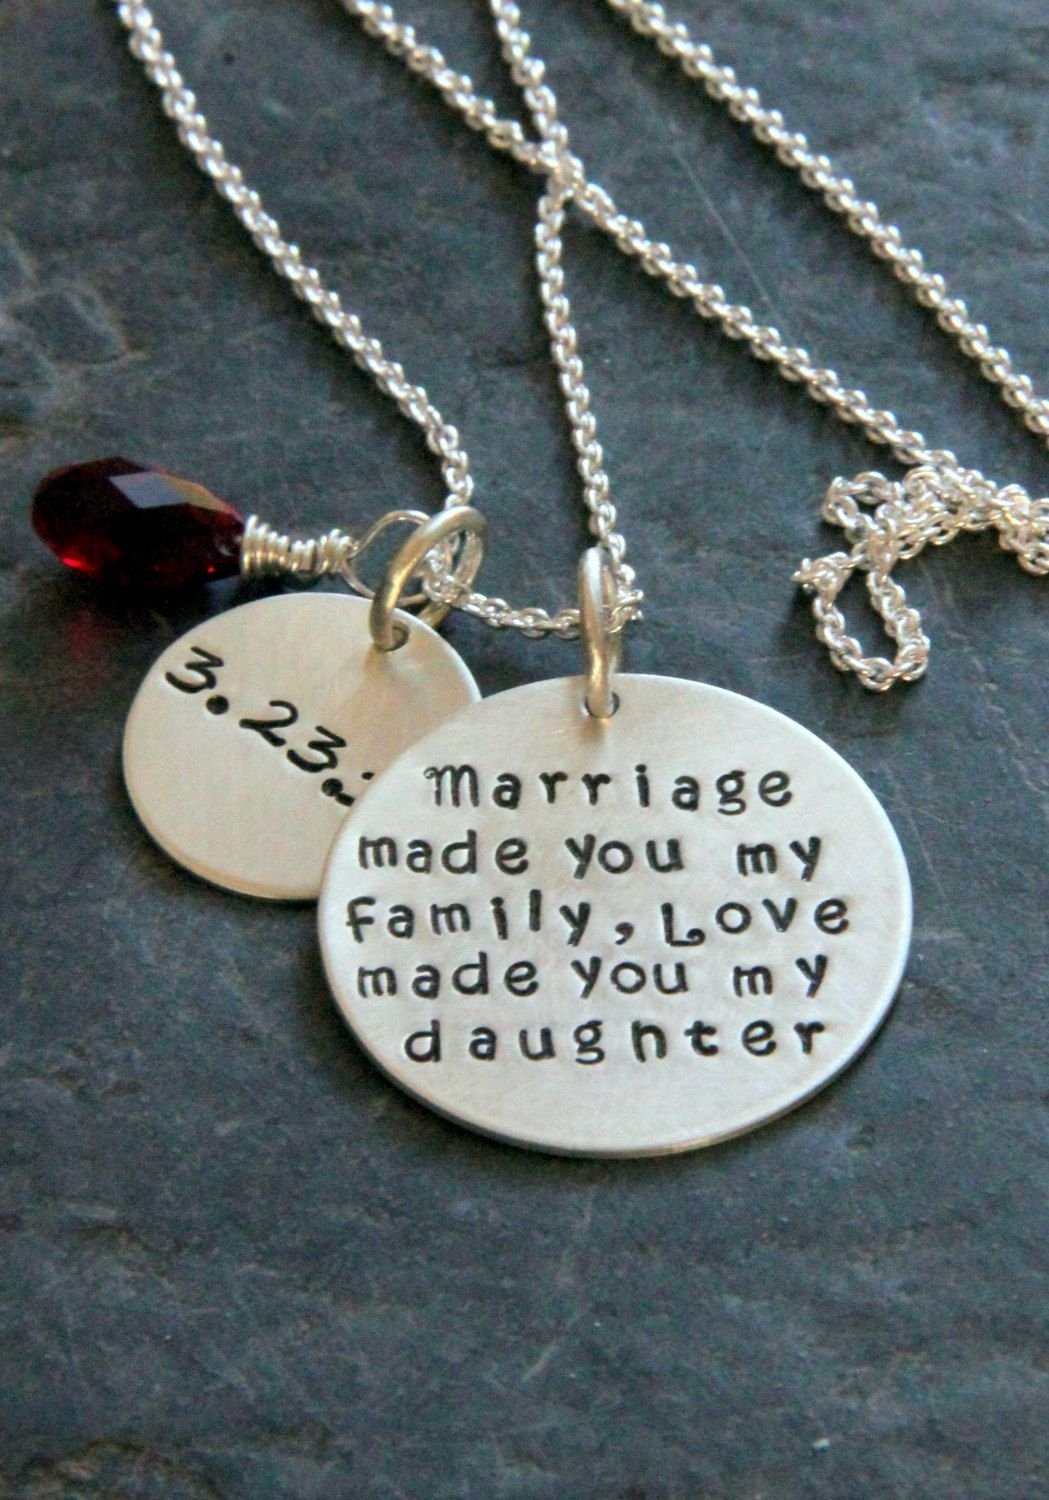 10 Stylish Gift Ideas For Daughter In Law gift for daughter in law marriage made you my family gift from 1 2020